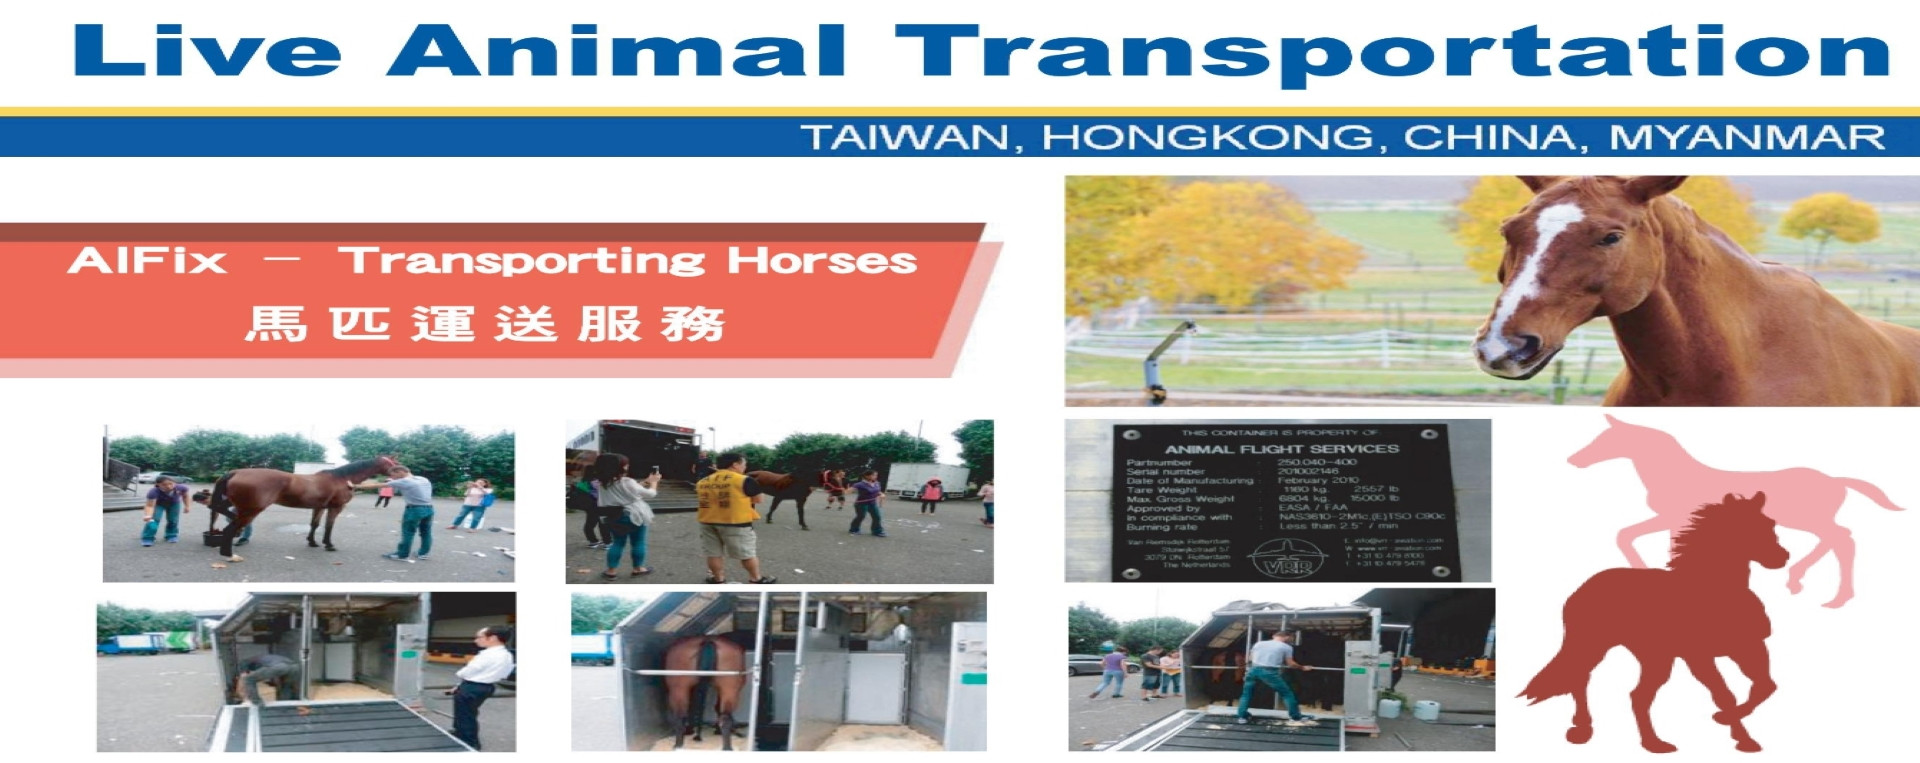 Live Animal Transportation